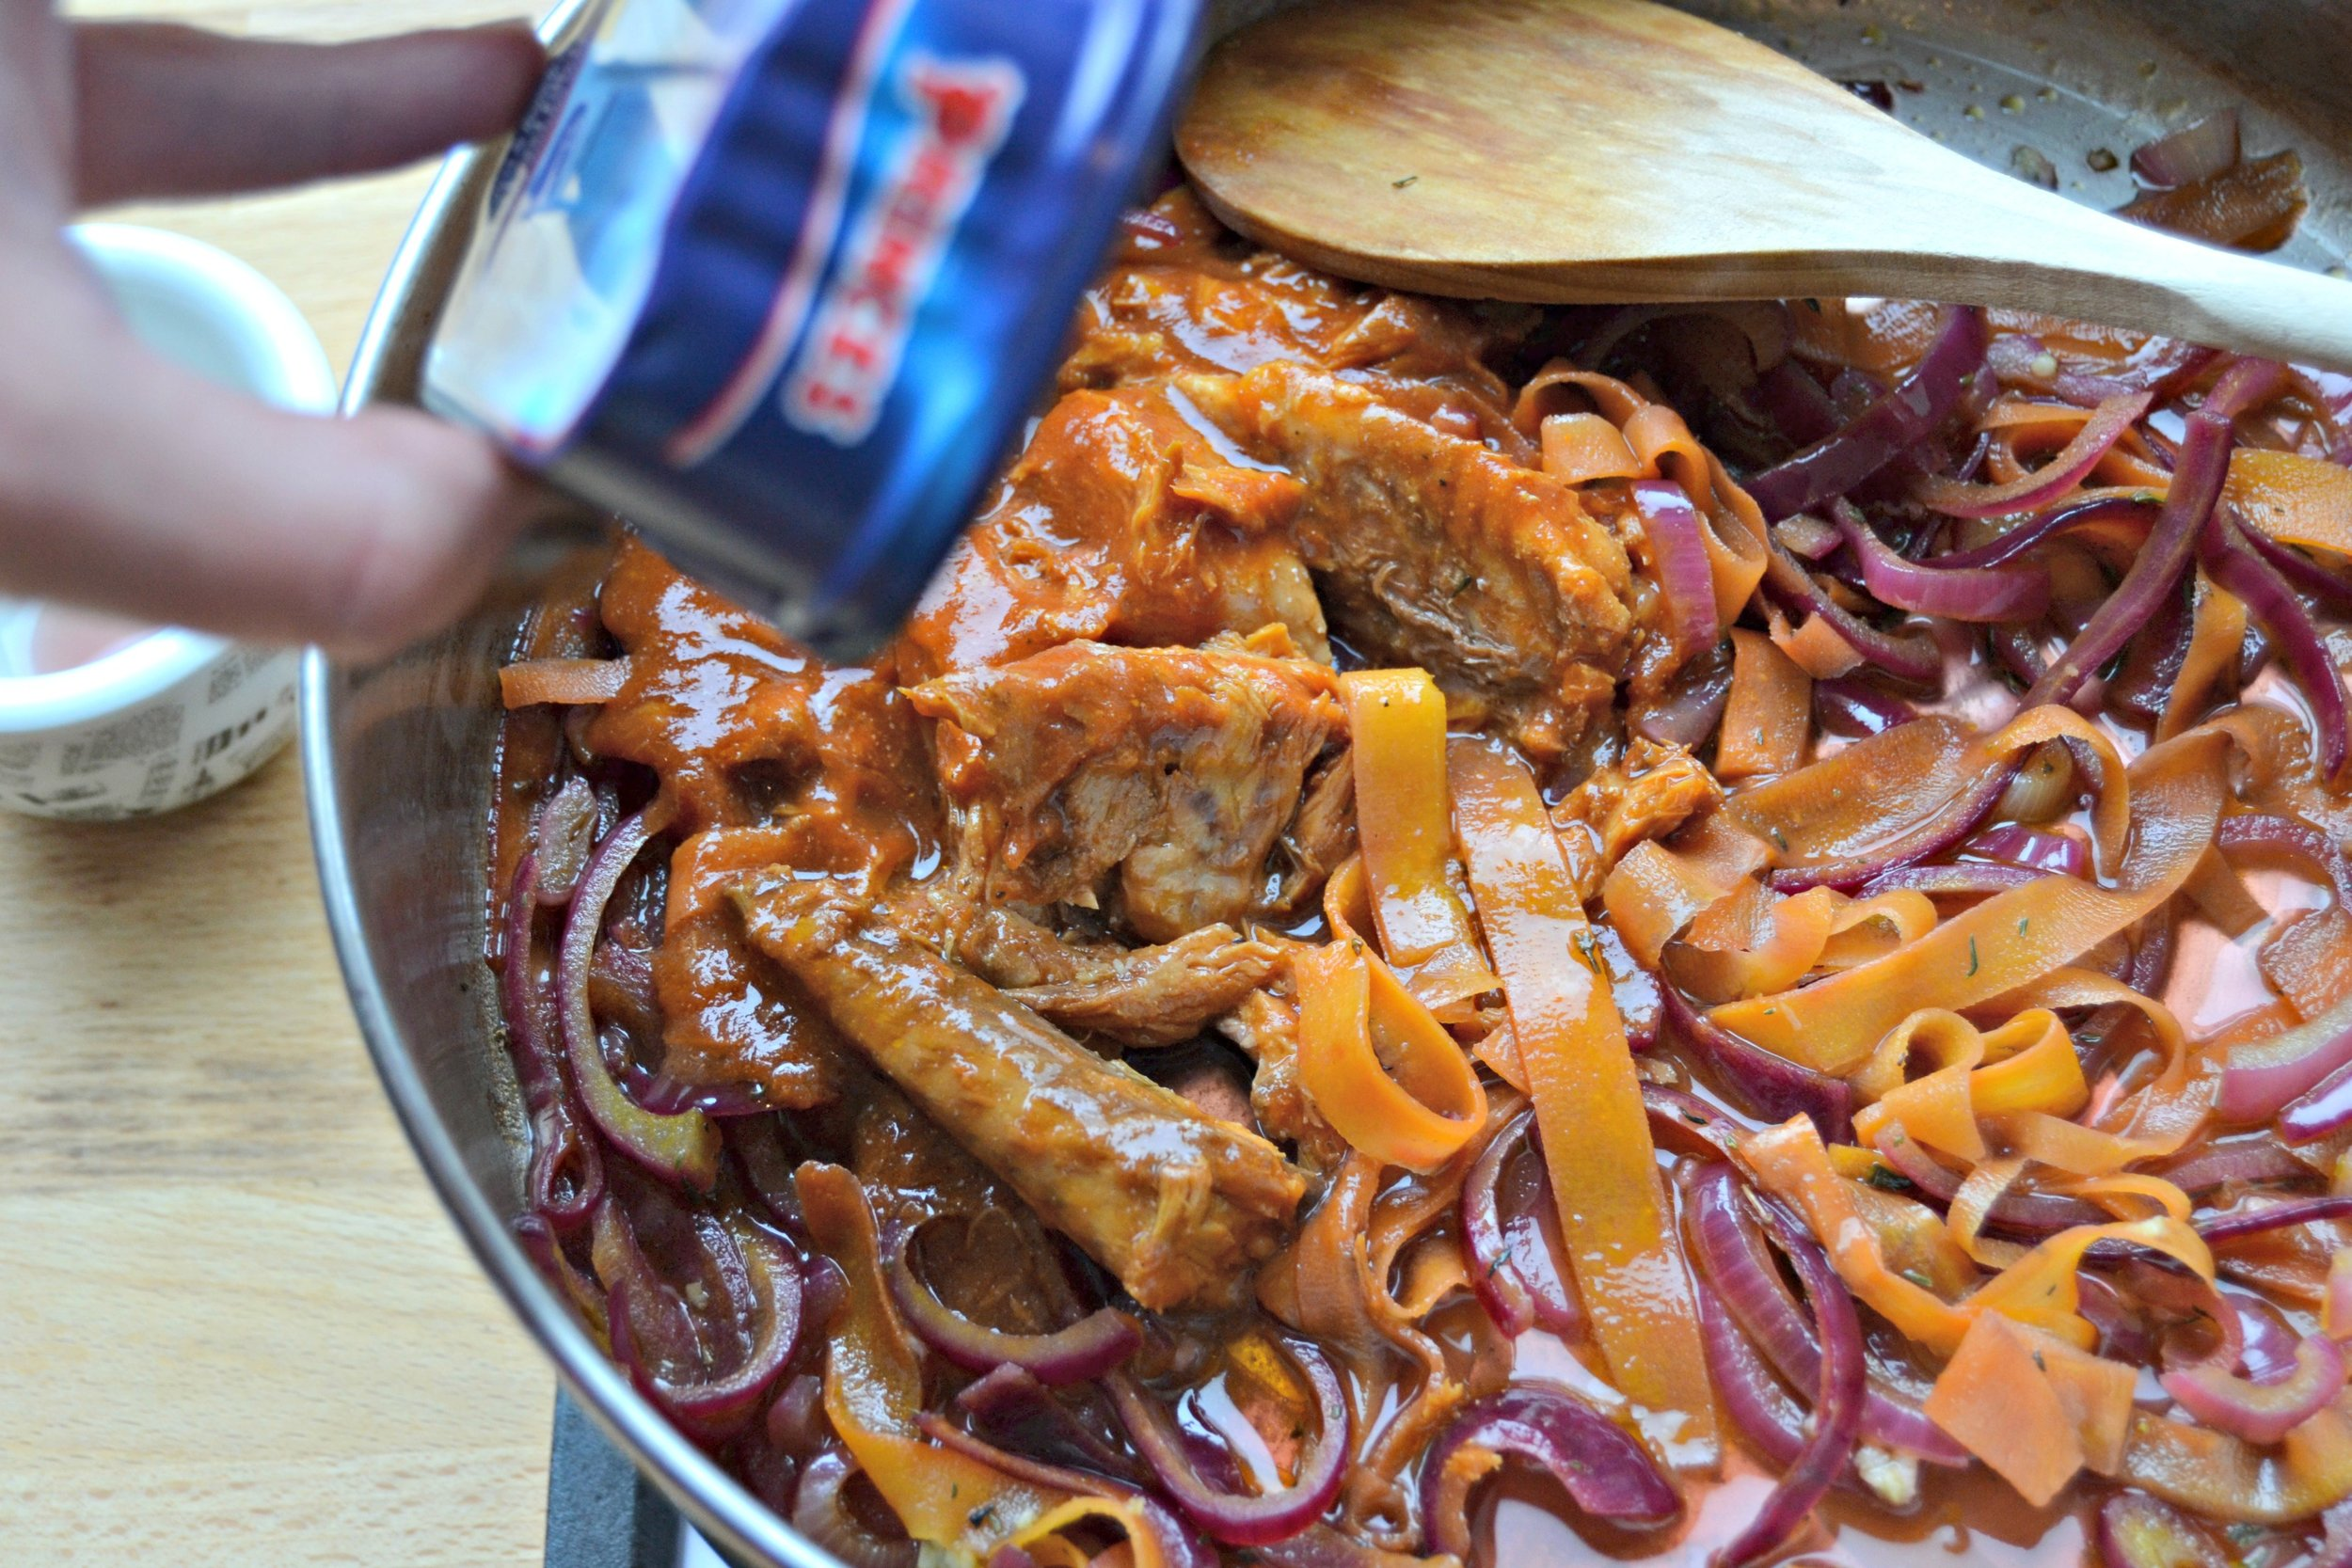 5.Open the can of Princes Mackerel in Spicy Tomato Sauce and add to the pan – the sauce and the fish.